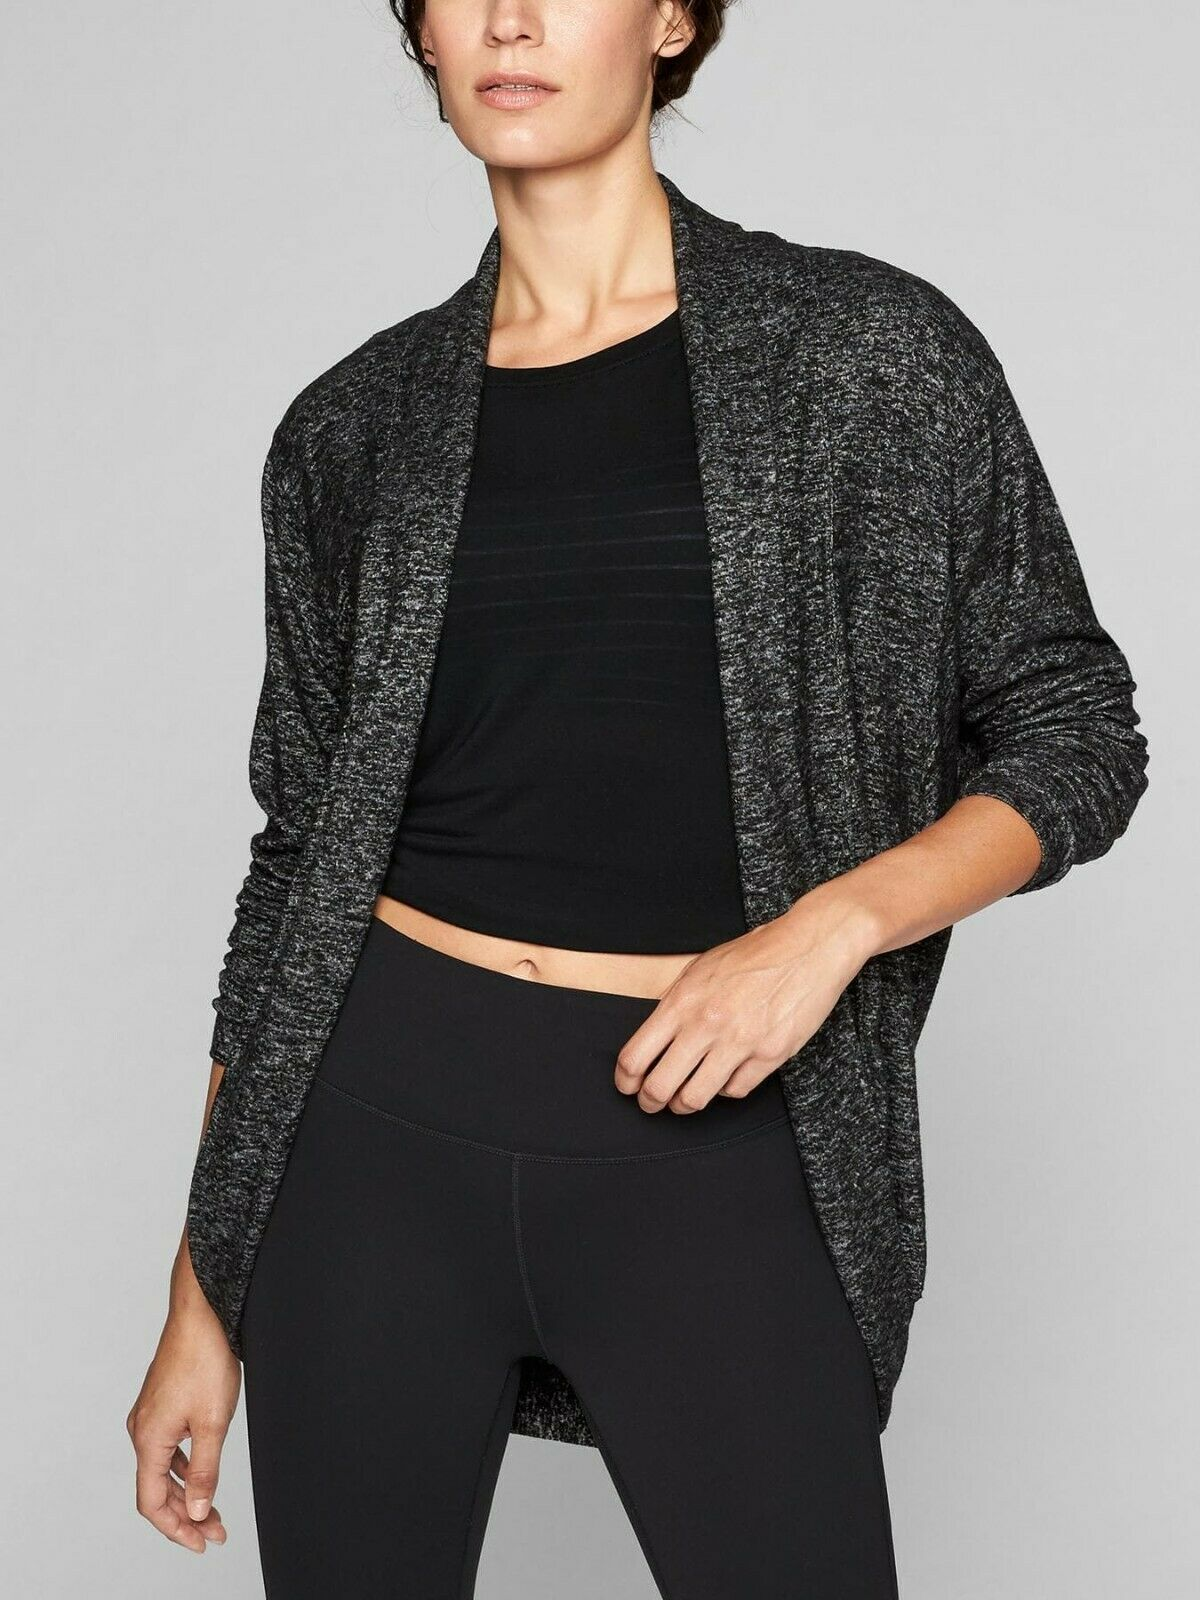 New ATHLETA Luxe Pose Wrap CHARCOAL HEATHER Extra Small XS